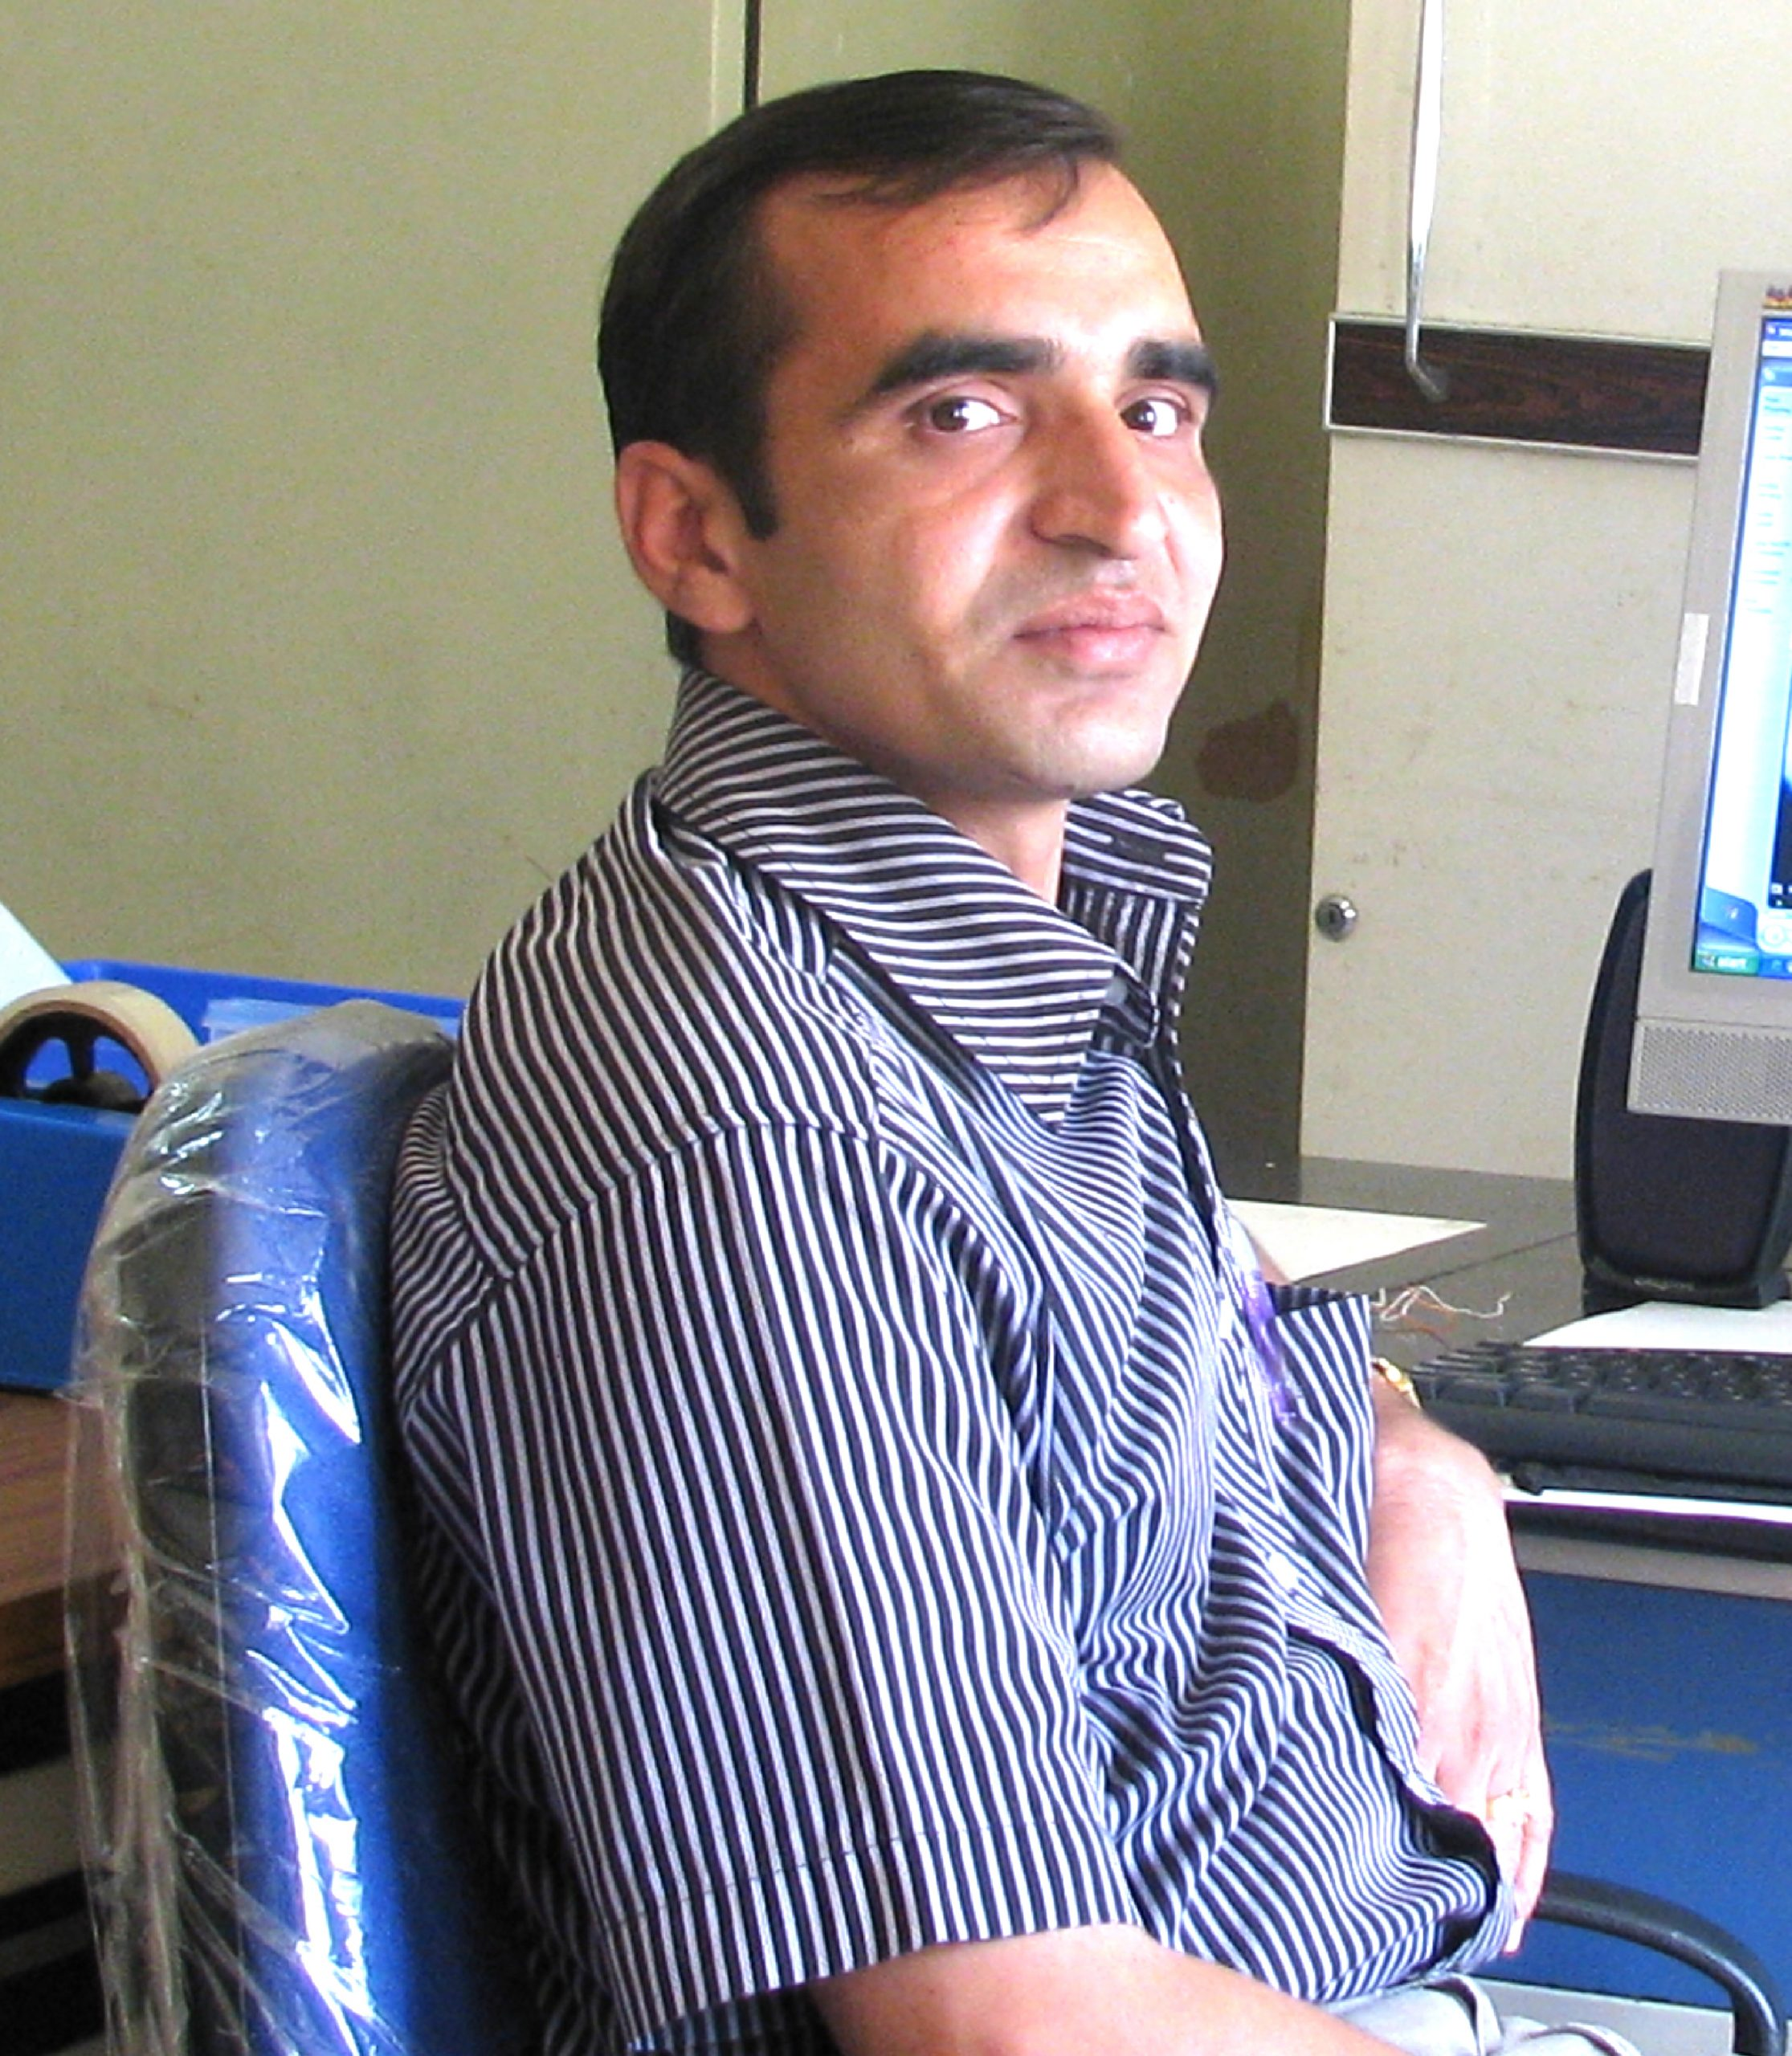 Sujeevan Ratnasingham, chief architect of BOLD Systems